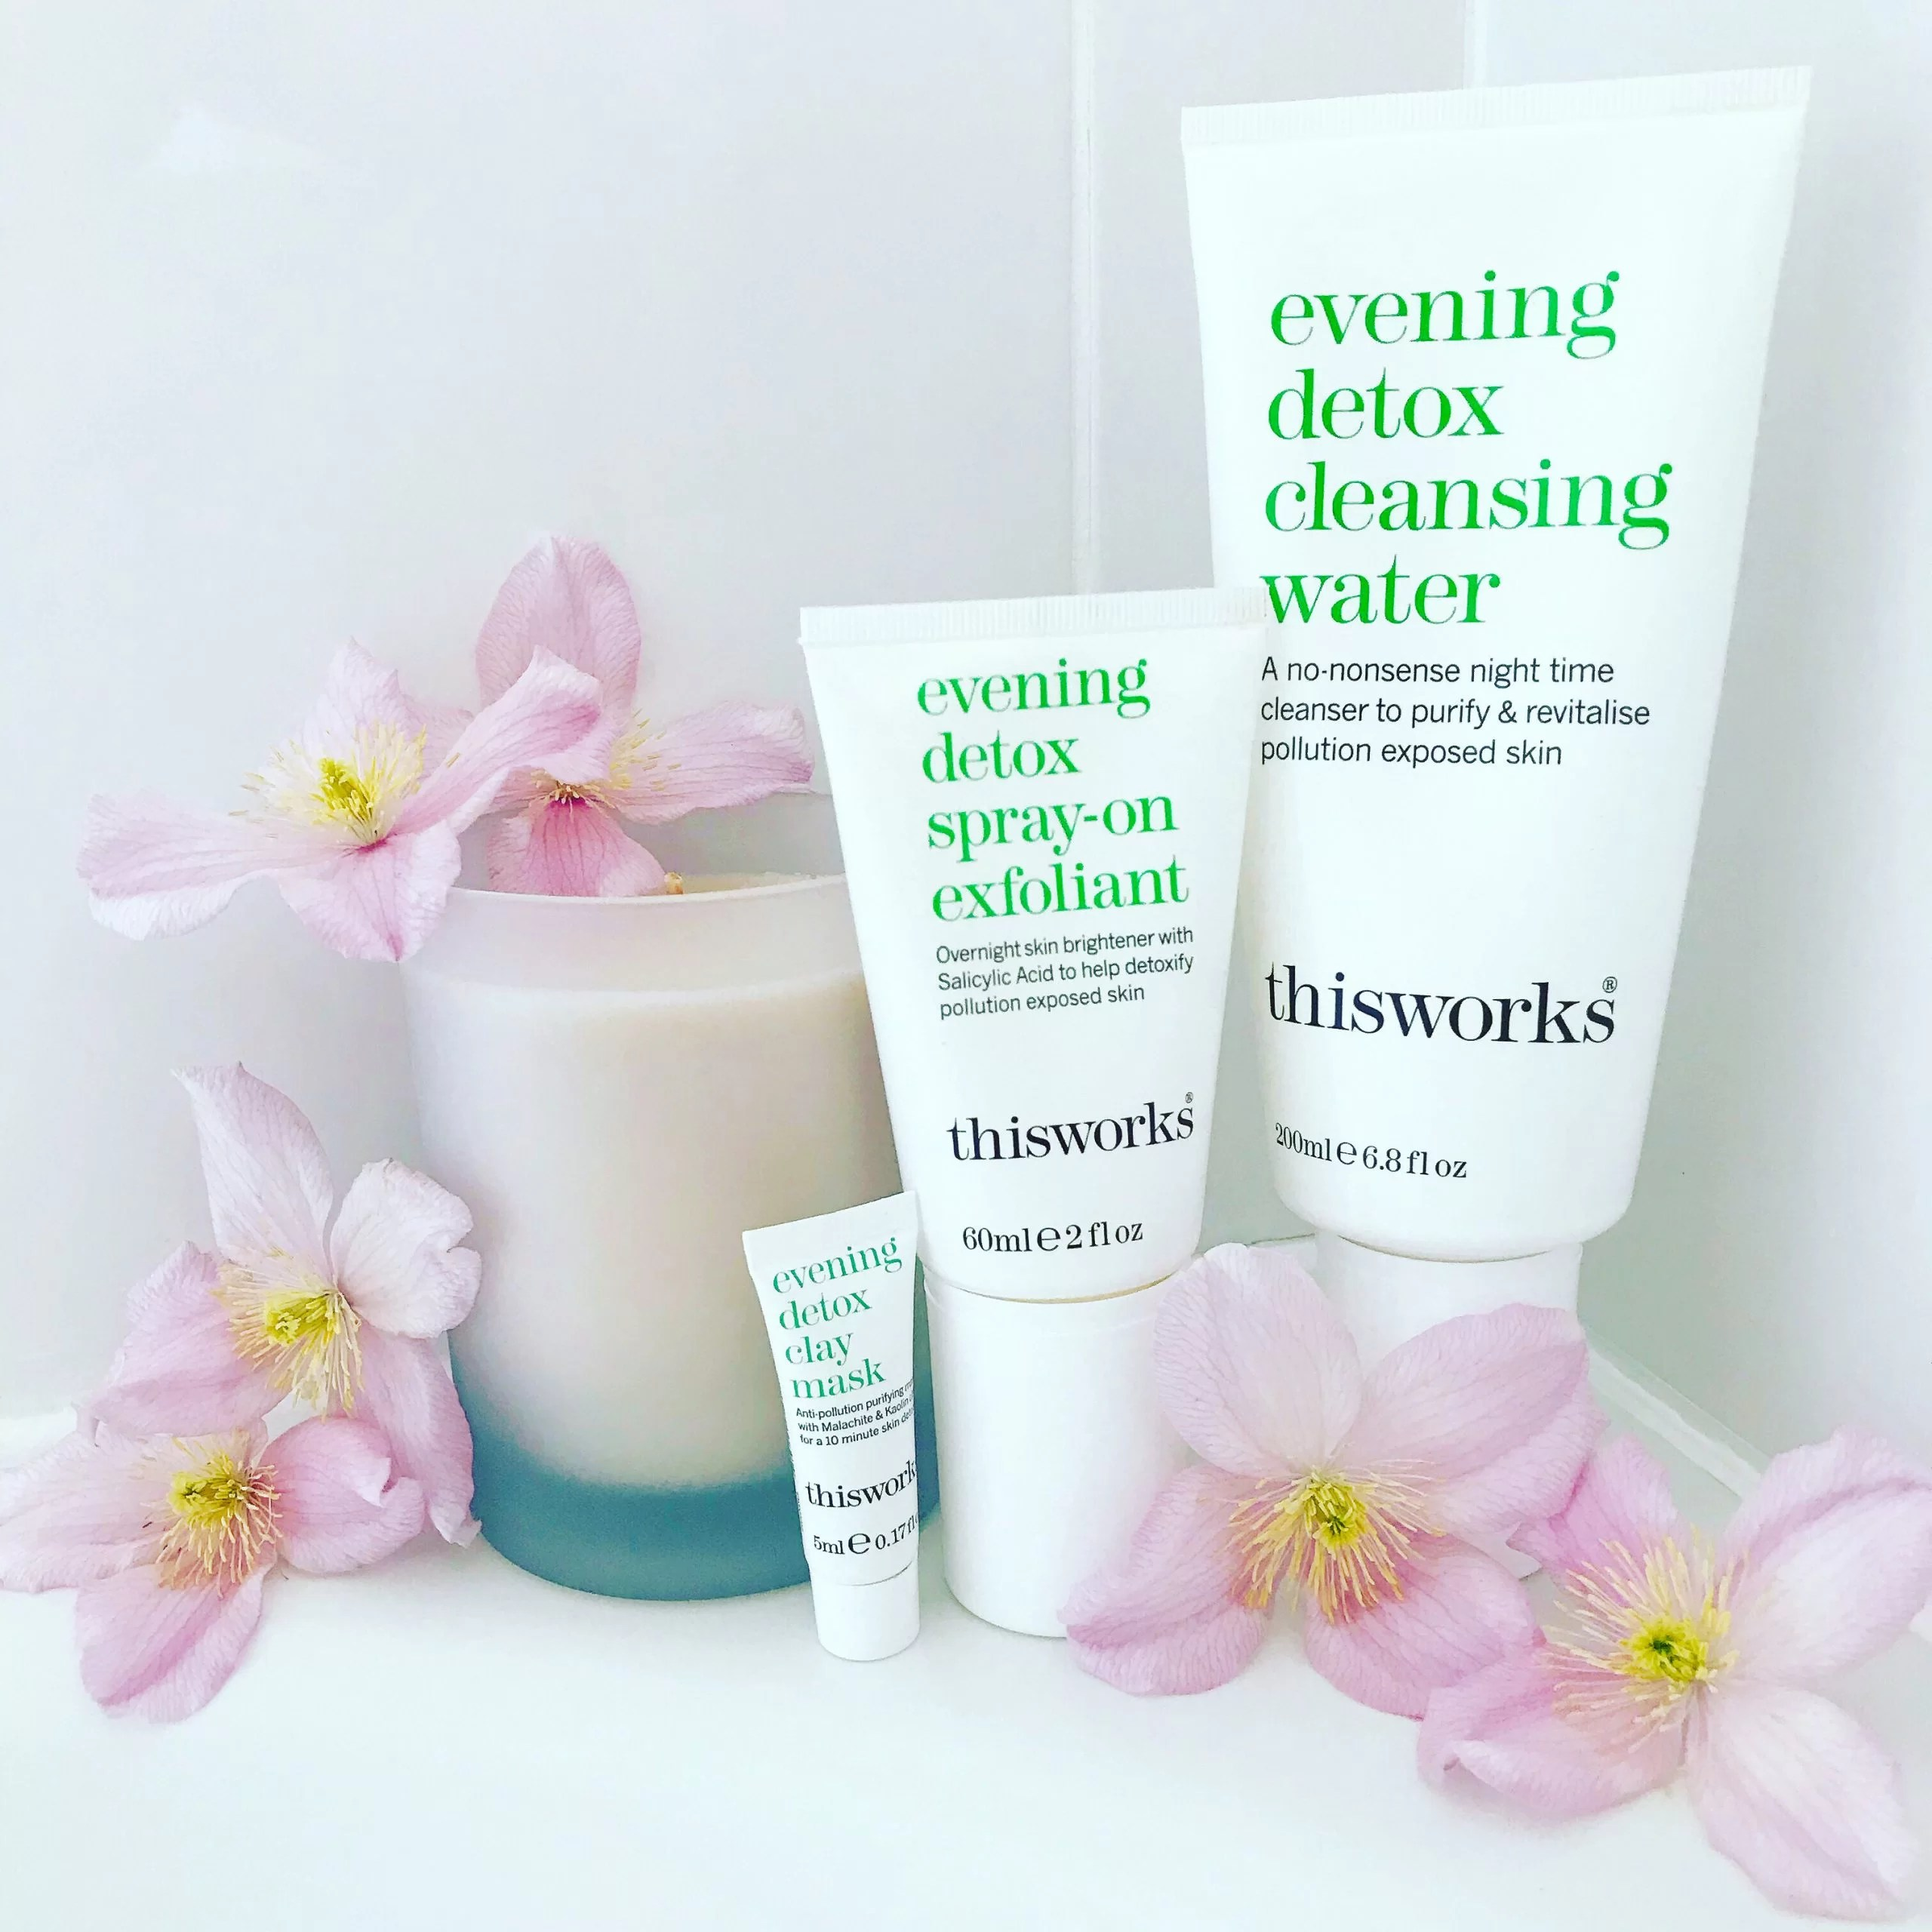 This Works Evening Detox Review